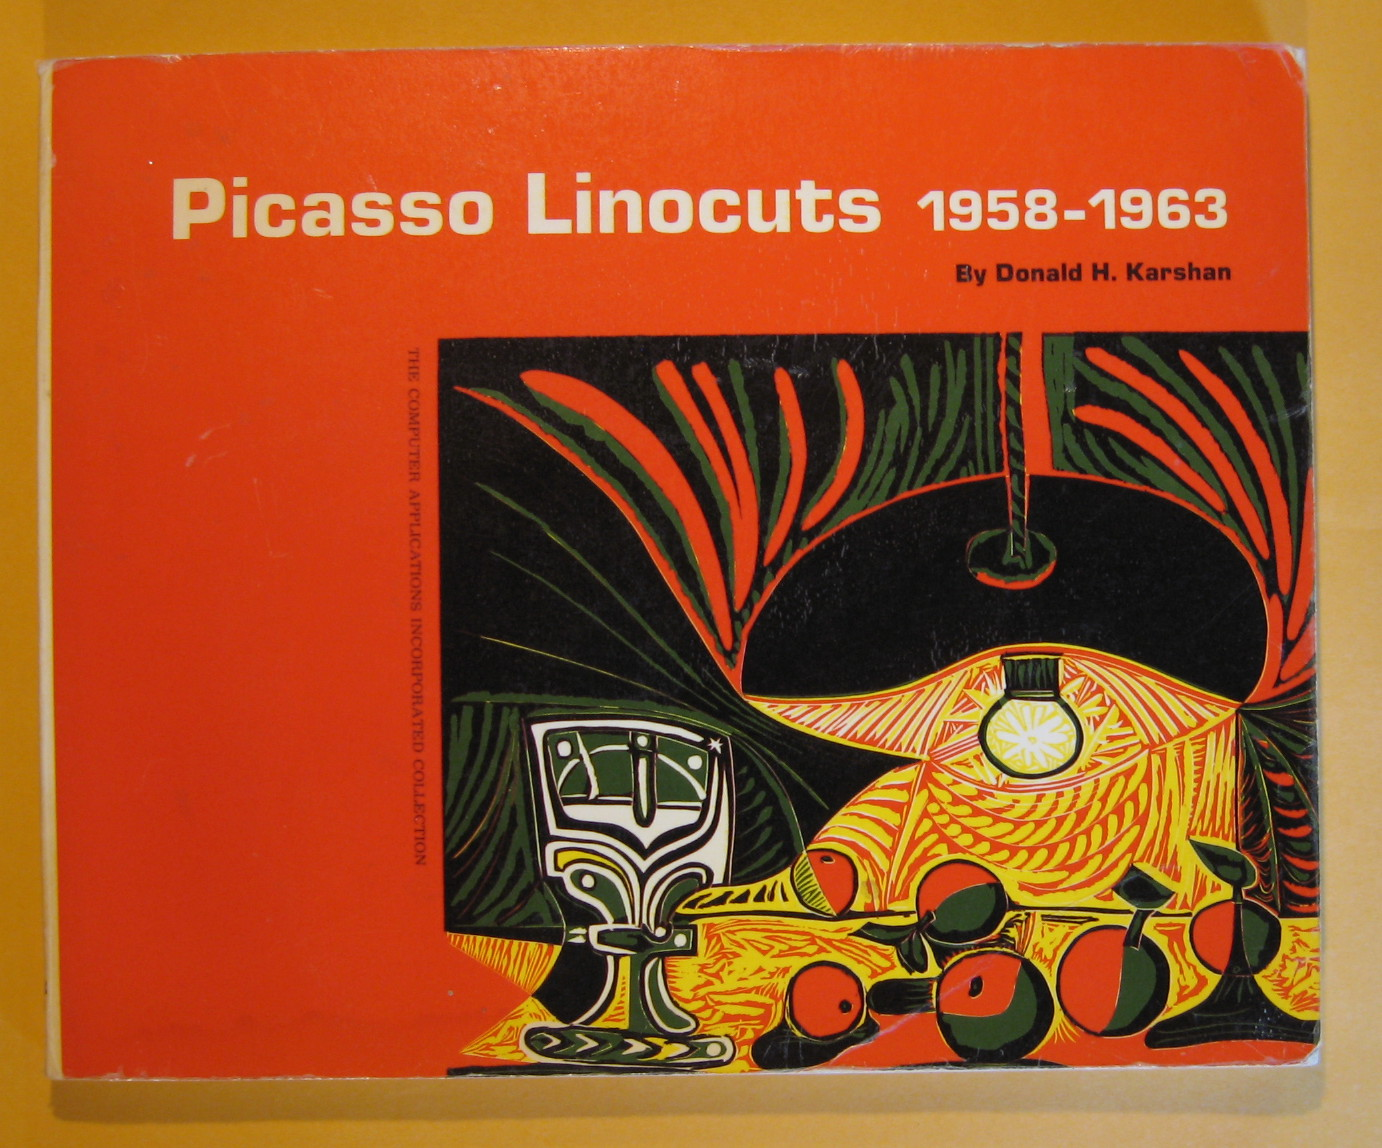 Picasso Linocuts 1958 -1963, Karshan Donald H.